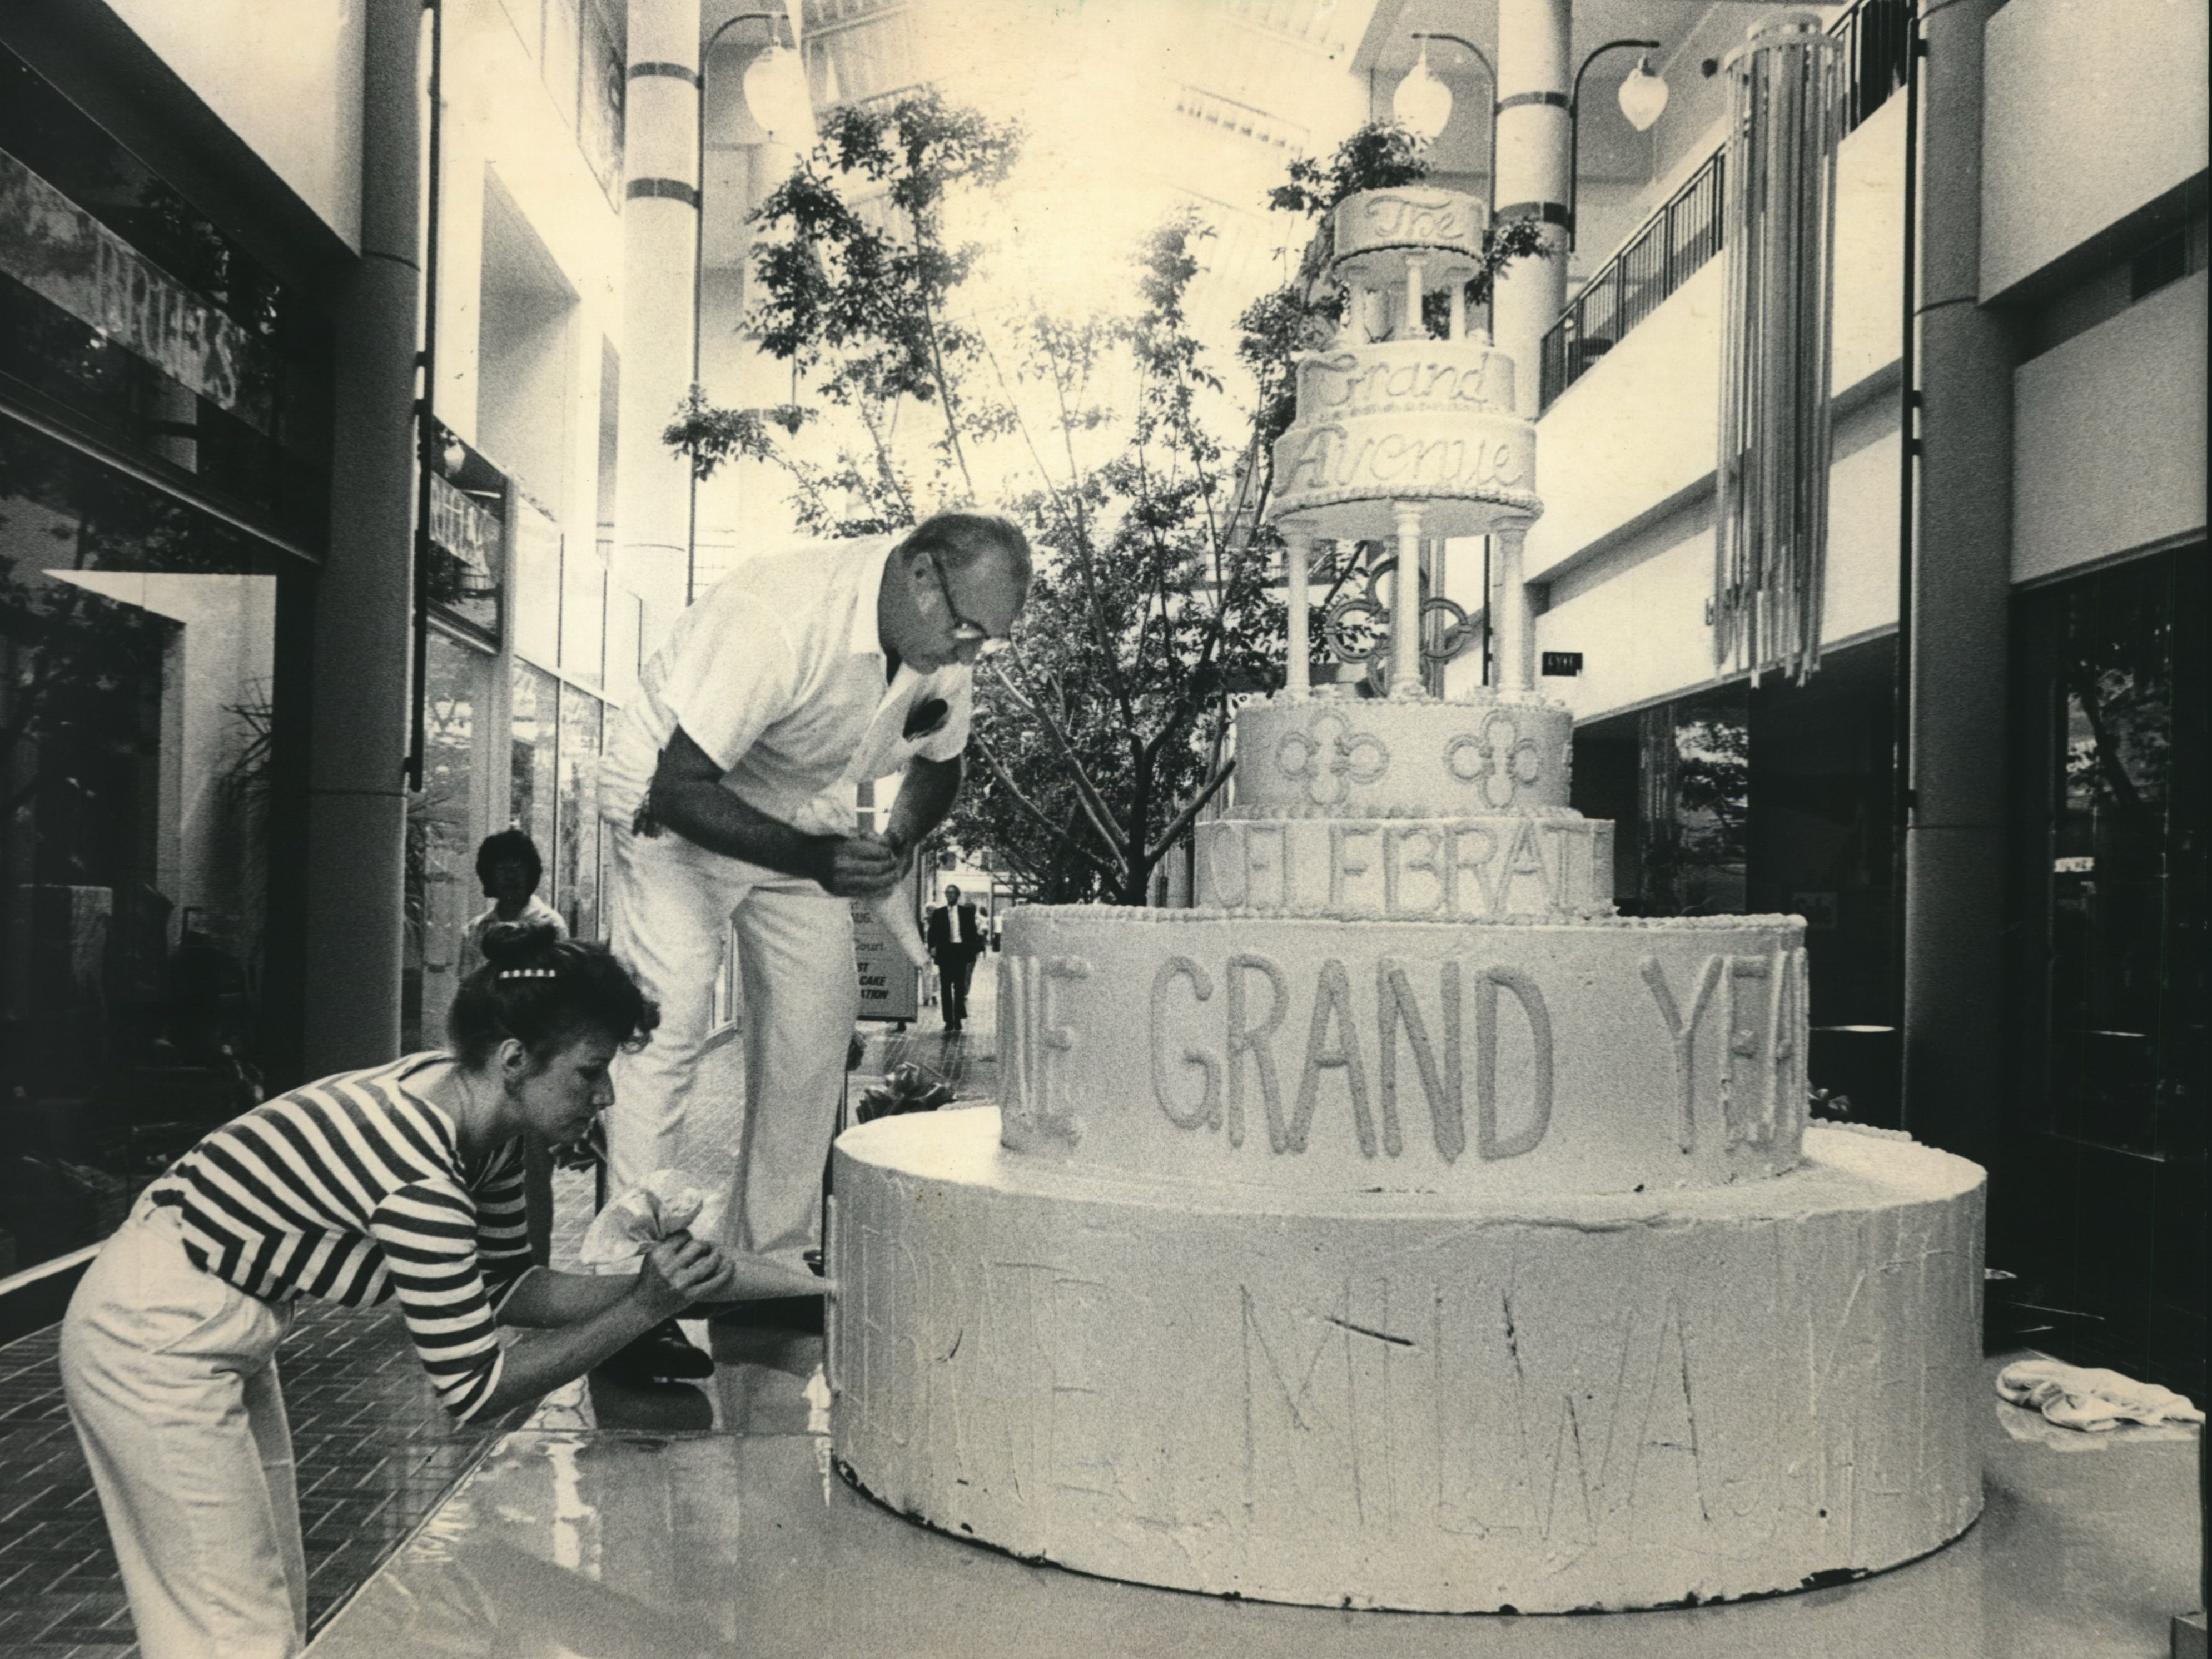 Kurt Haberer and Diane Dentice of the Shorewood Village Bakery prepared a giant birthday cake, getting it ready for a Friday party that was part of the celebration marking the first anniversary of the opening of Milwaukee's Grand Avenue retail center. The celebration,, featuring music and dance performances, runs through Sunday. Grand Avenue Mall in Milwaukee